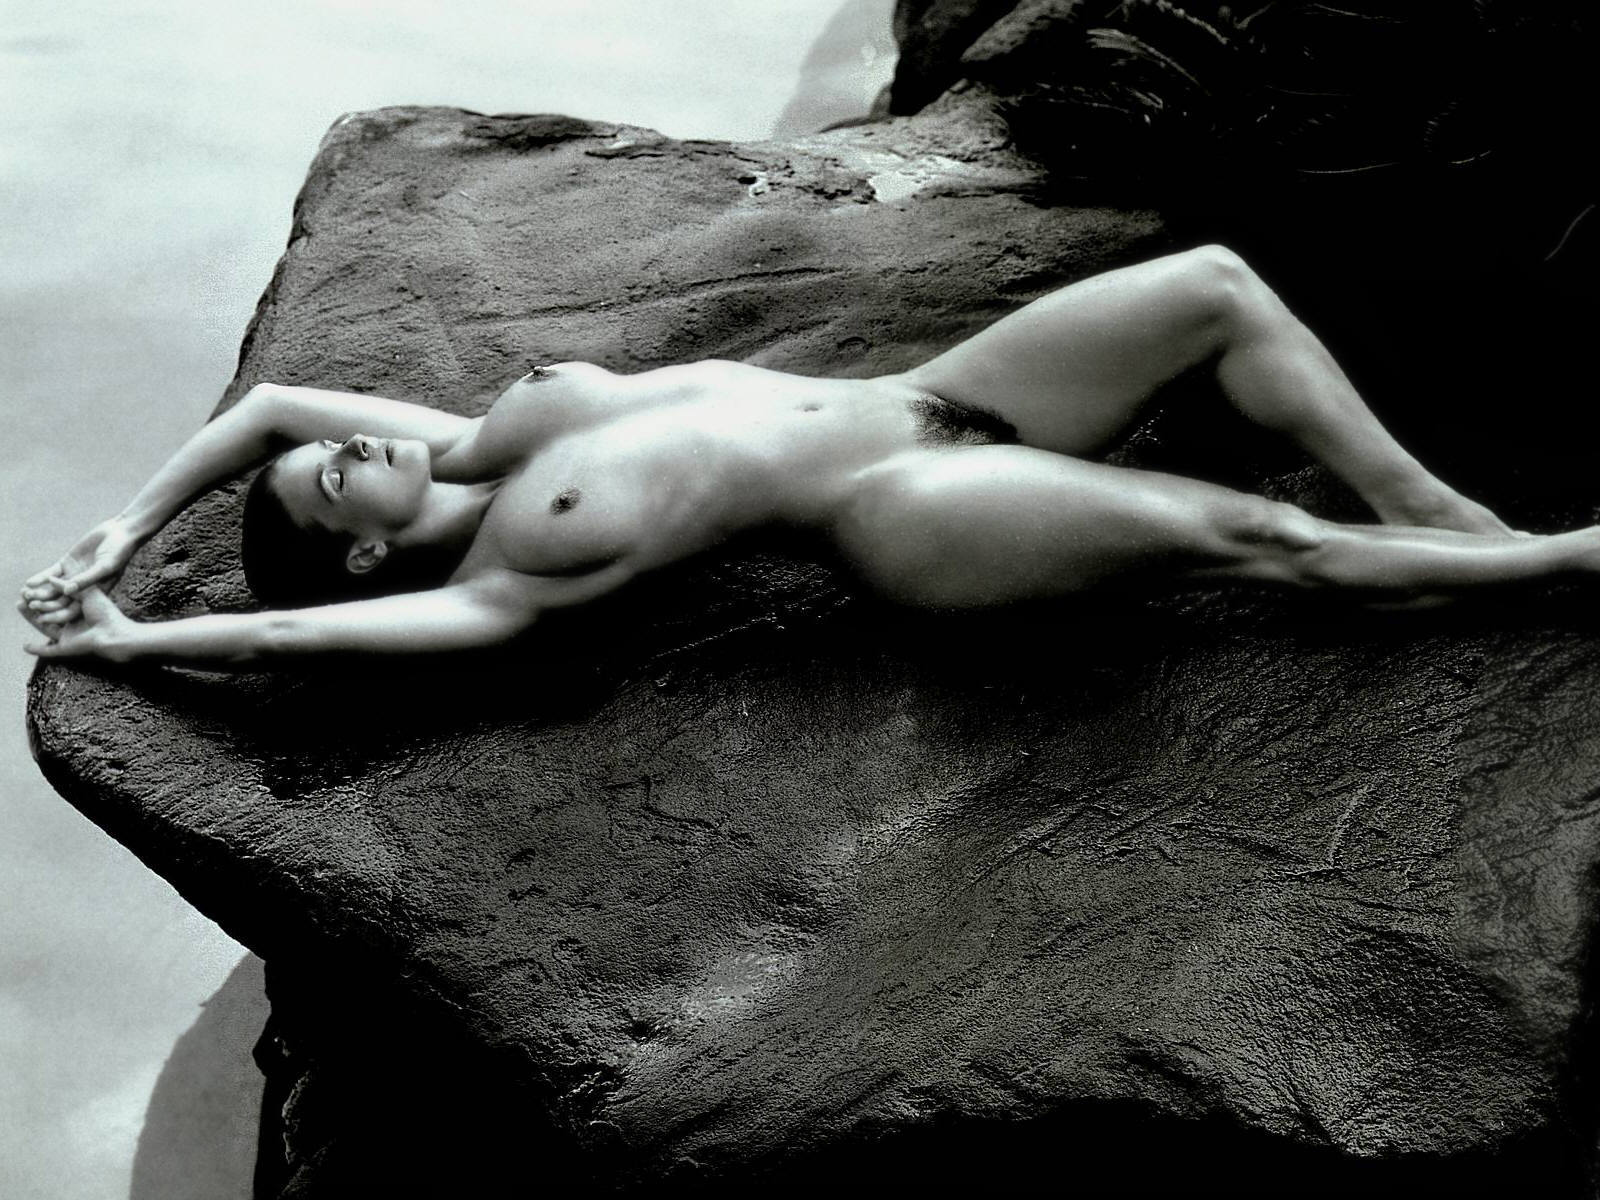 Think, that Katarina witt naked pictures can help